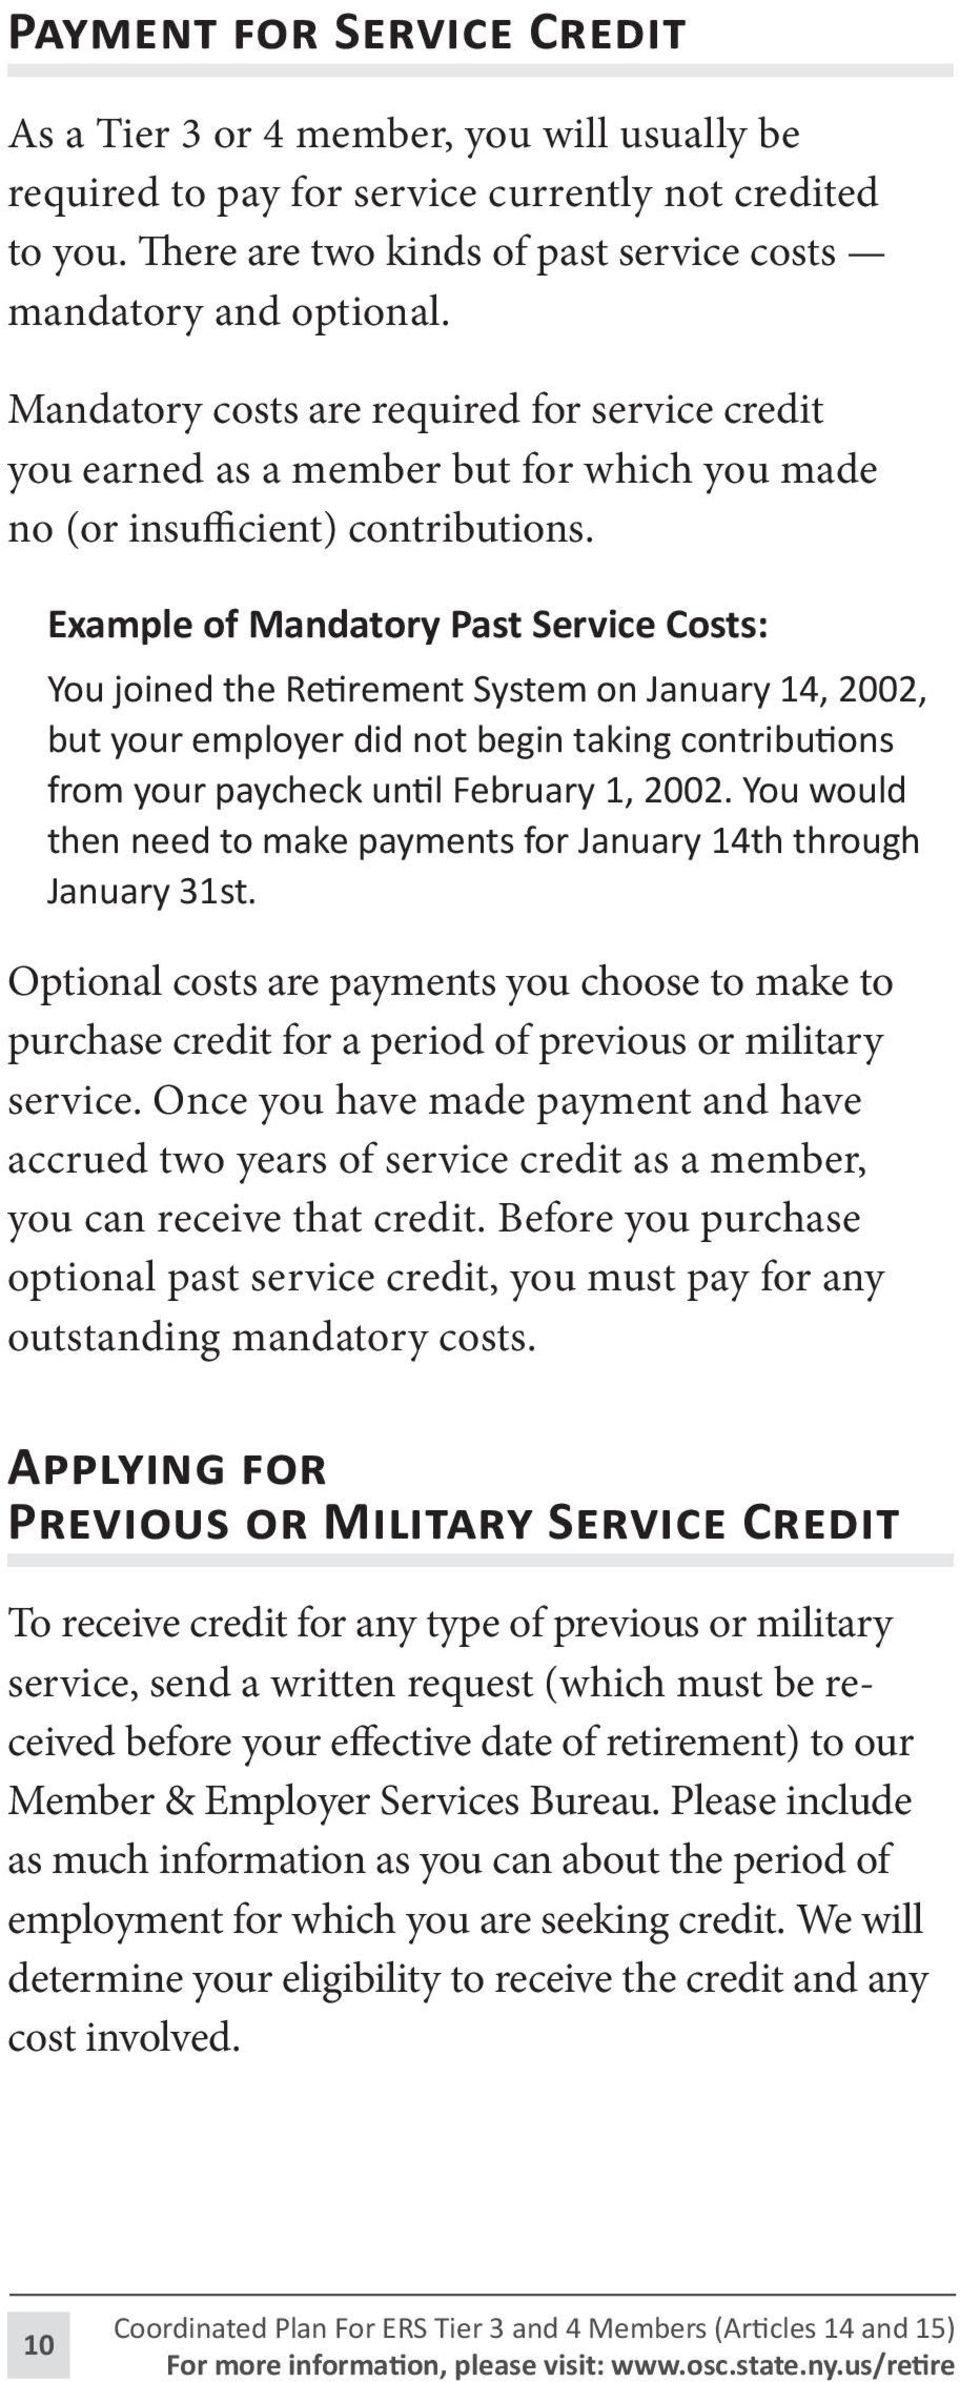 Example of Mandatory Past Service Costs: You joined the Retirement System on January 14, 2002, but your employer did not begin taking contributions from your paycheck until February 1, 2002.